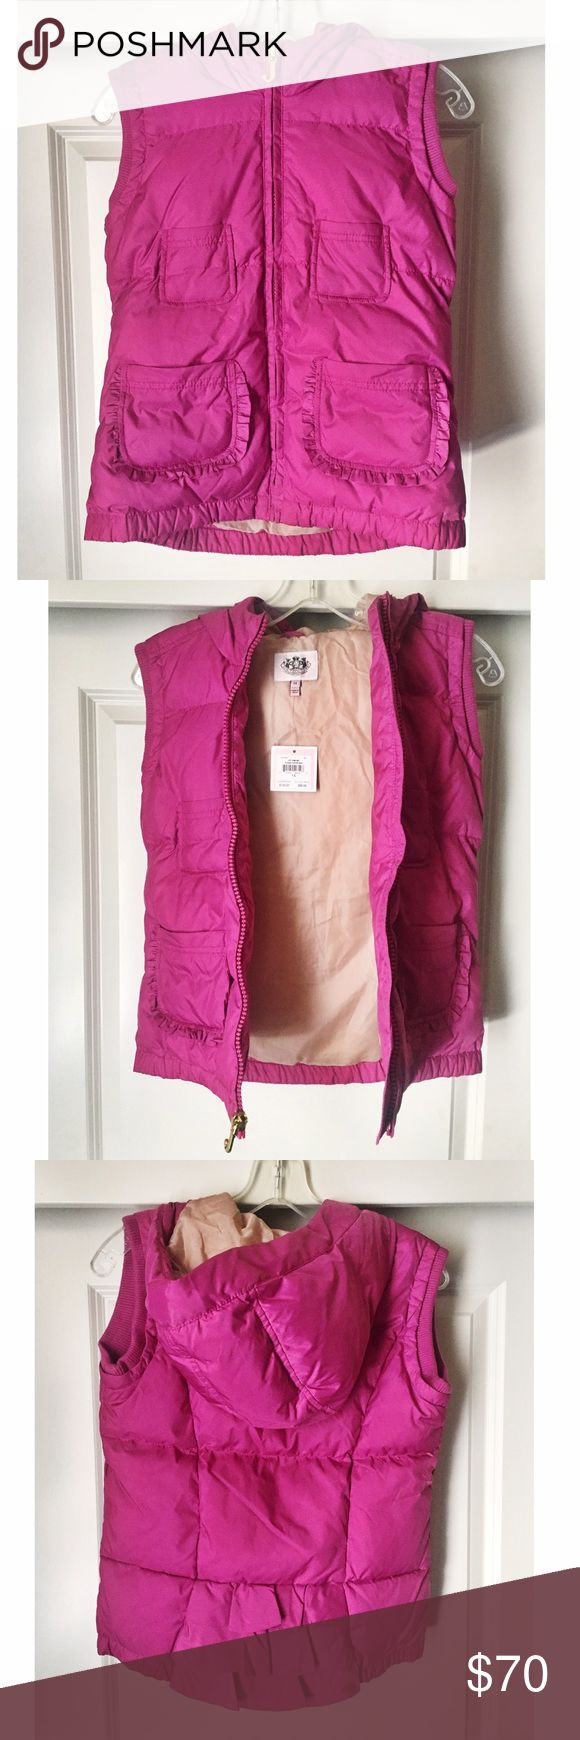 Juicy Couture pink vest NEW WITH TAGS Juicy Couture pink vest NEW WITH TAGS. Size 14, but fits like a small or would even fit an xsmall well! Juicy Couture Jackets & Coats Vests